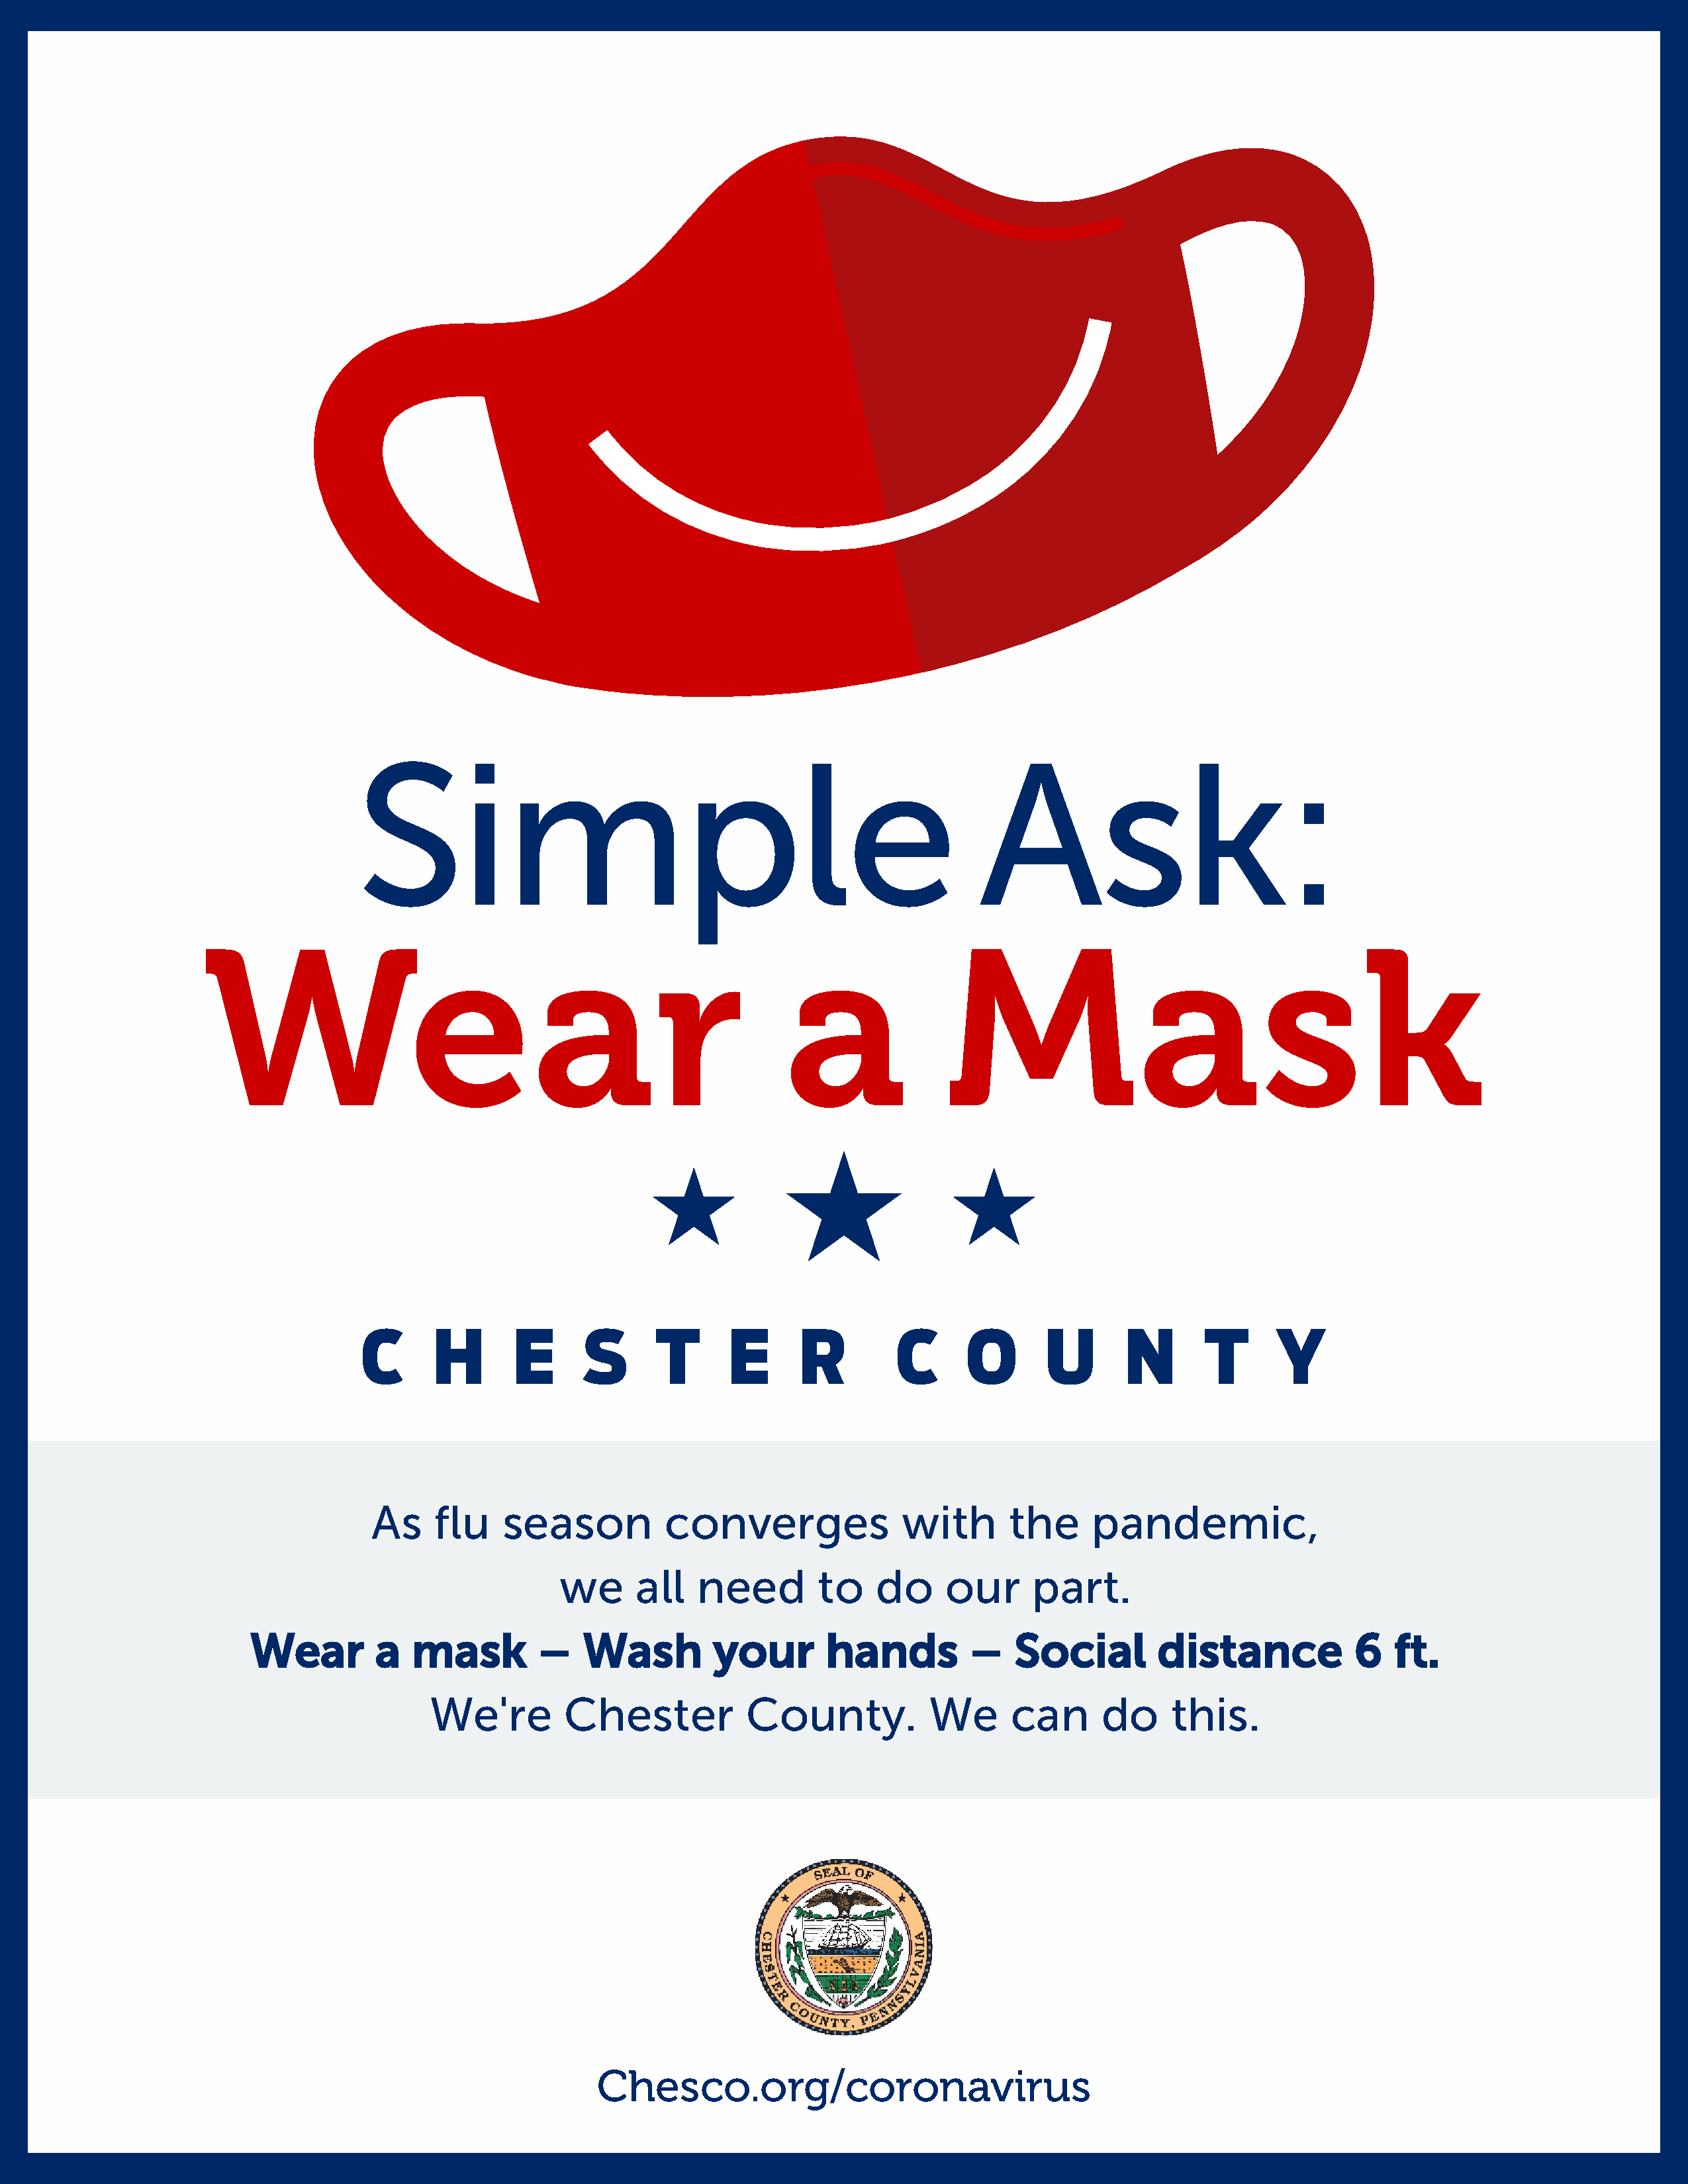 Simple Ask Wear a Mask 8.5 x 11 inch Poster